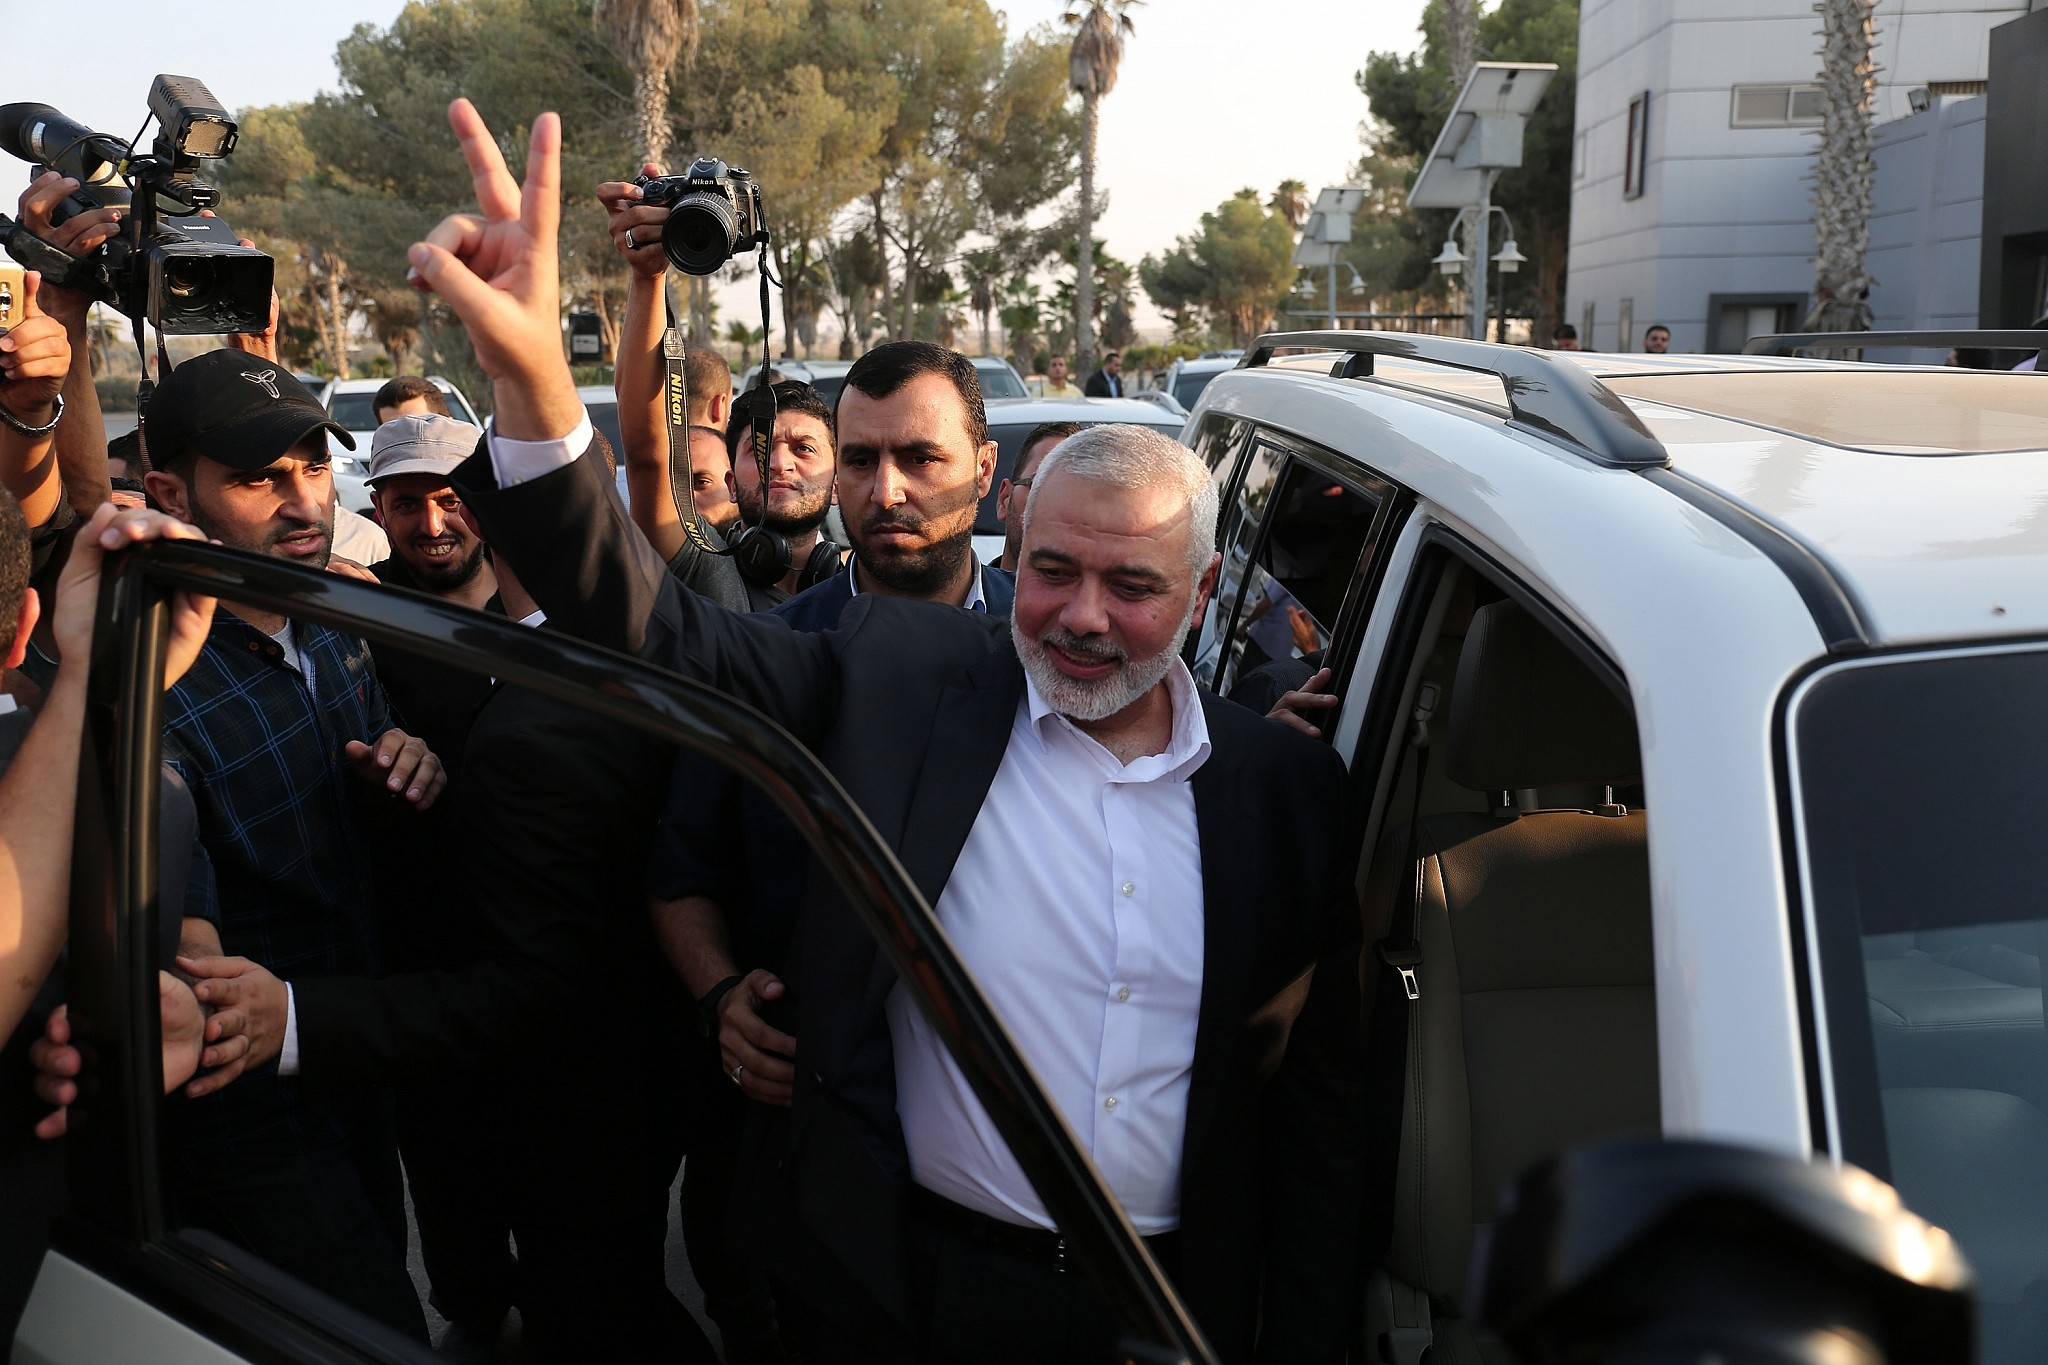 Hamas invites Palestinian Authority to control Gaza 'unimpeded'